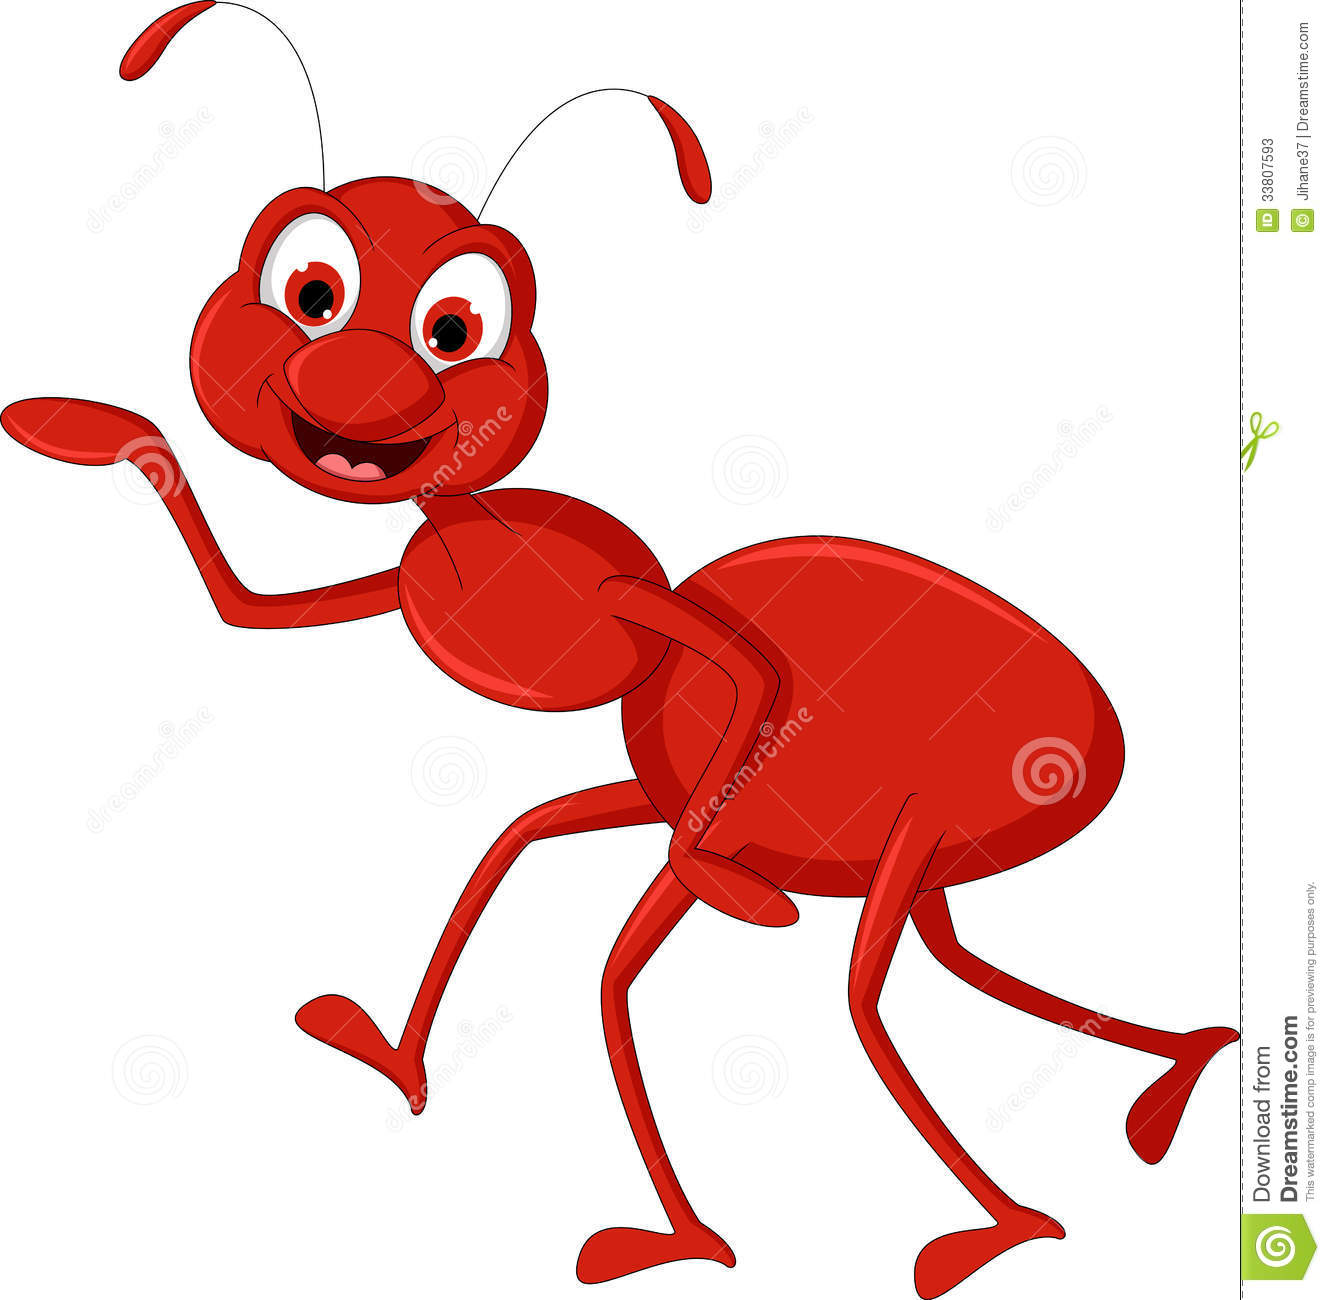 Red Ants Clipart Wallpapers Gallery